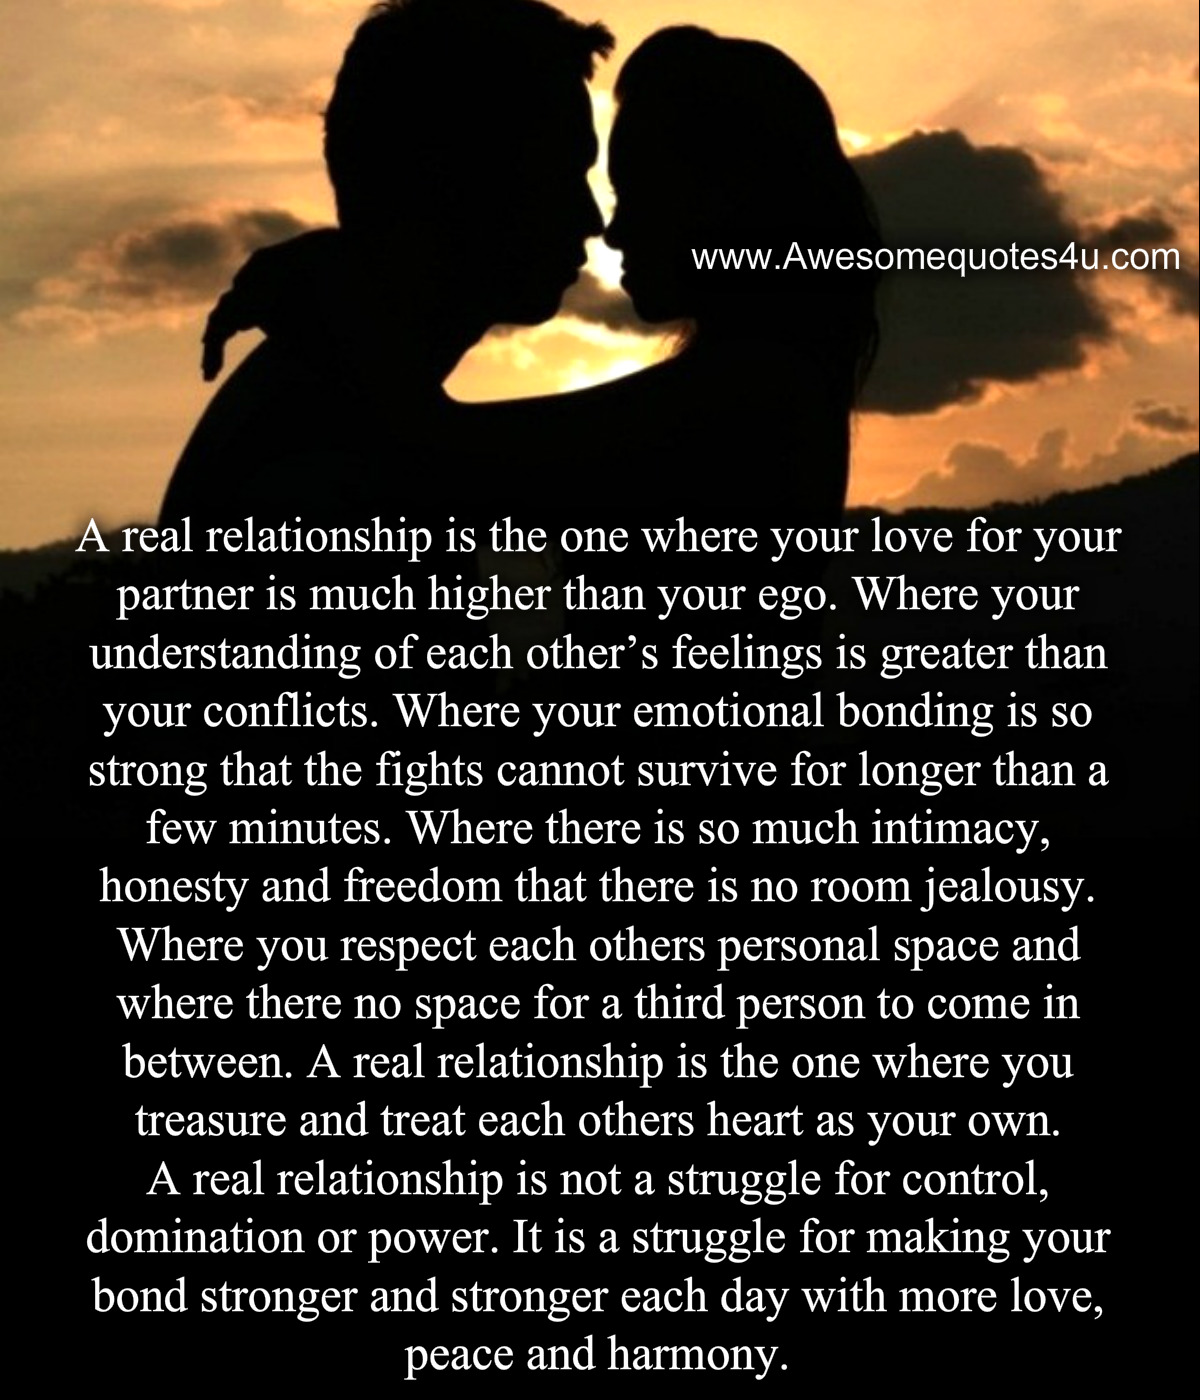 Awesome Quotes: A Real Relationship